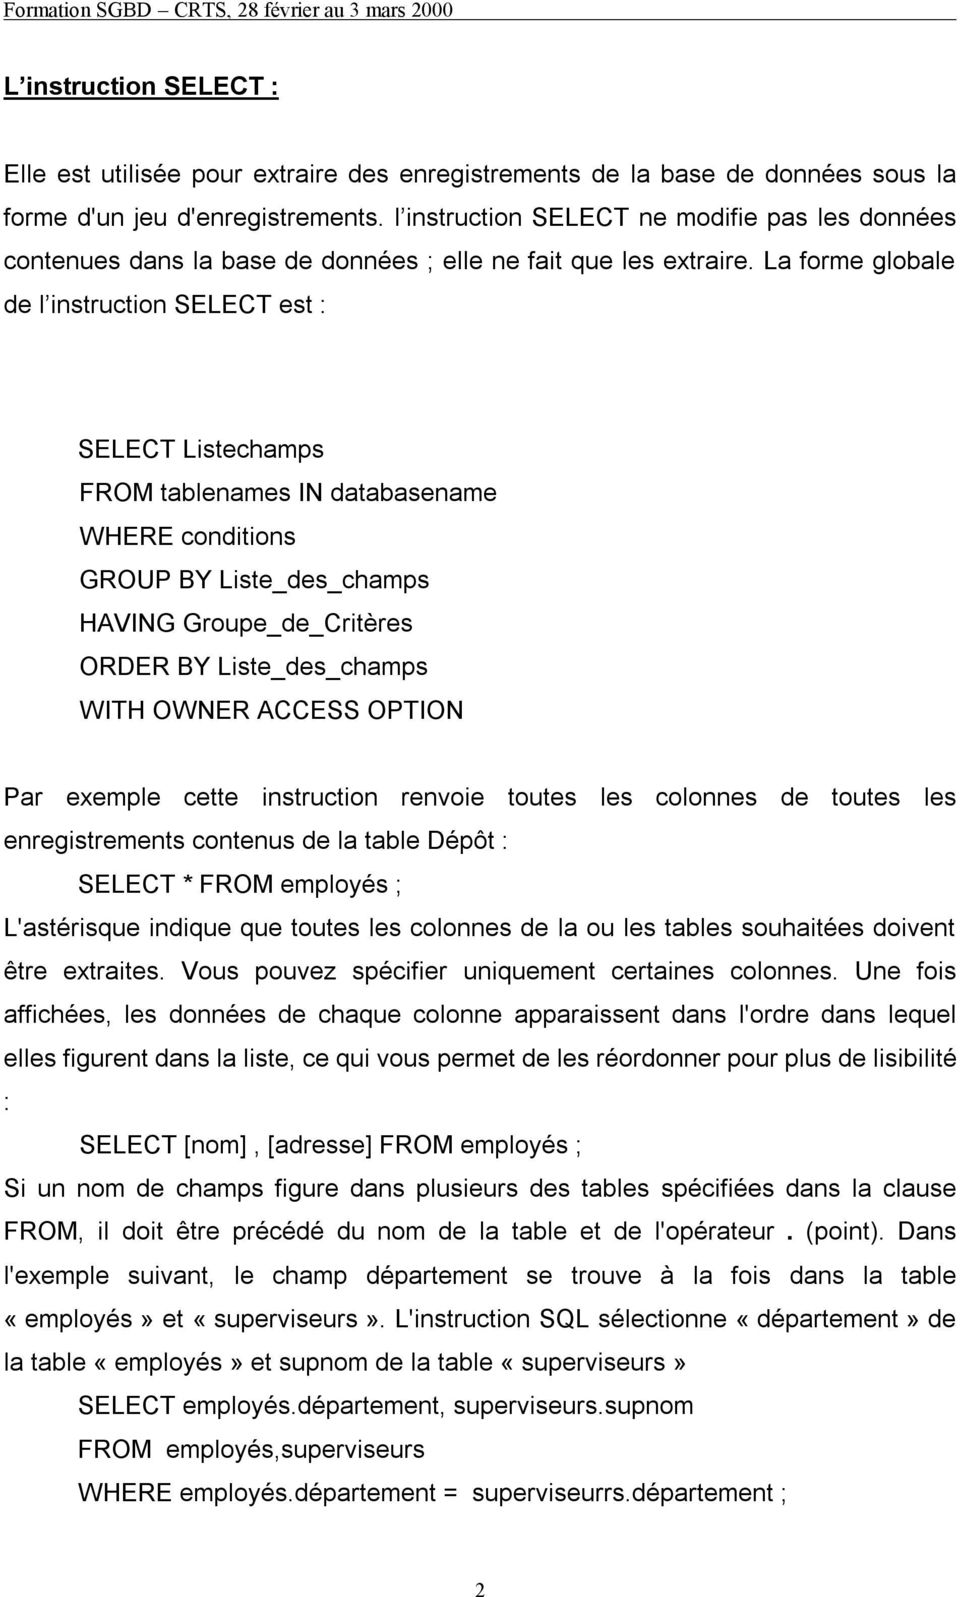 La forme globale de l instruction SELECT est : SELECT Listechamps FROM tablenames IN databasename WHERE conditions GROUP BY Liste_des_champs HAVING Groupe_de_Critères ORDER BY Liste_des_champs WITH